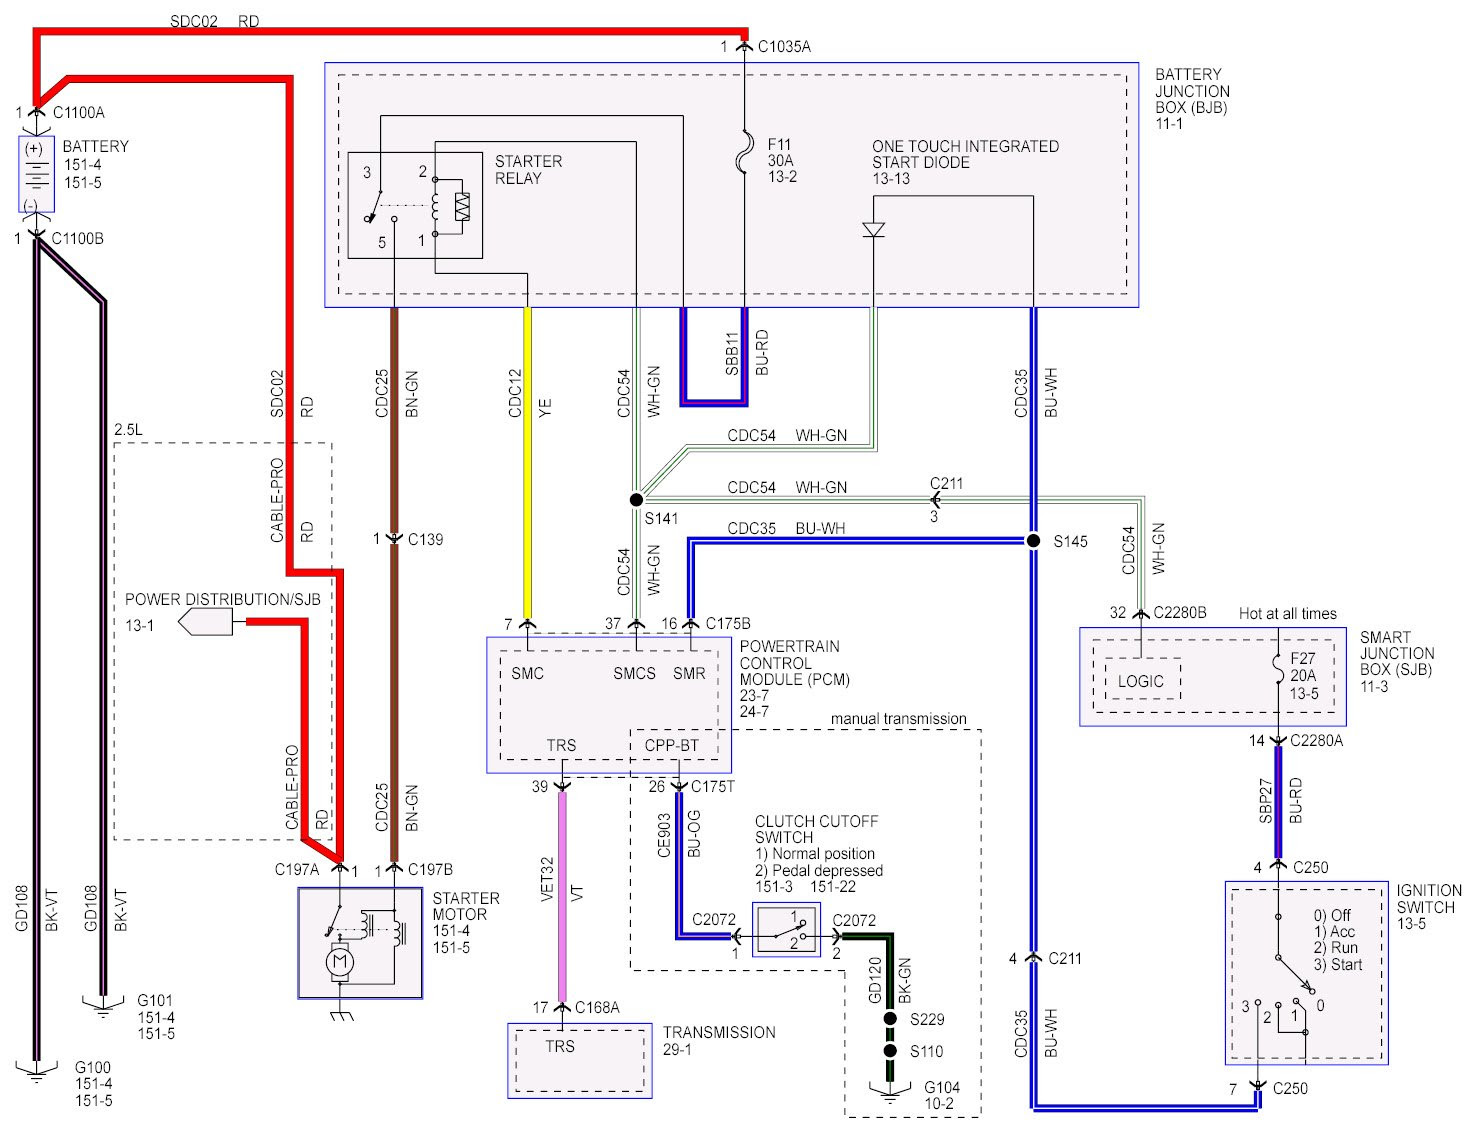 Diagram 04 Ford Escape Electrical Wiring Diagrams Full Version Hd Quality Wiring Diagrams 813 Vincentescrive Fr